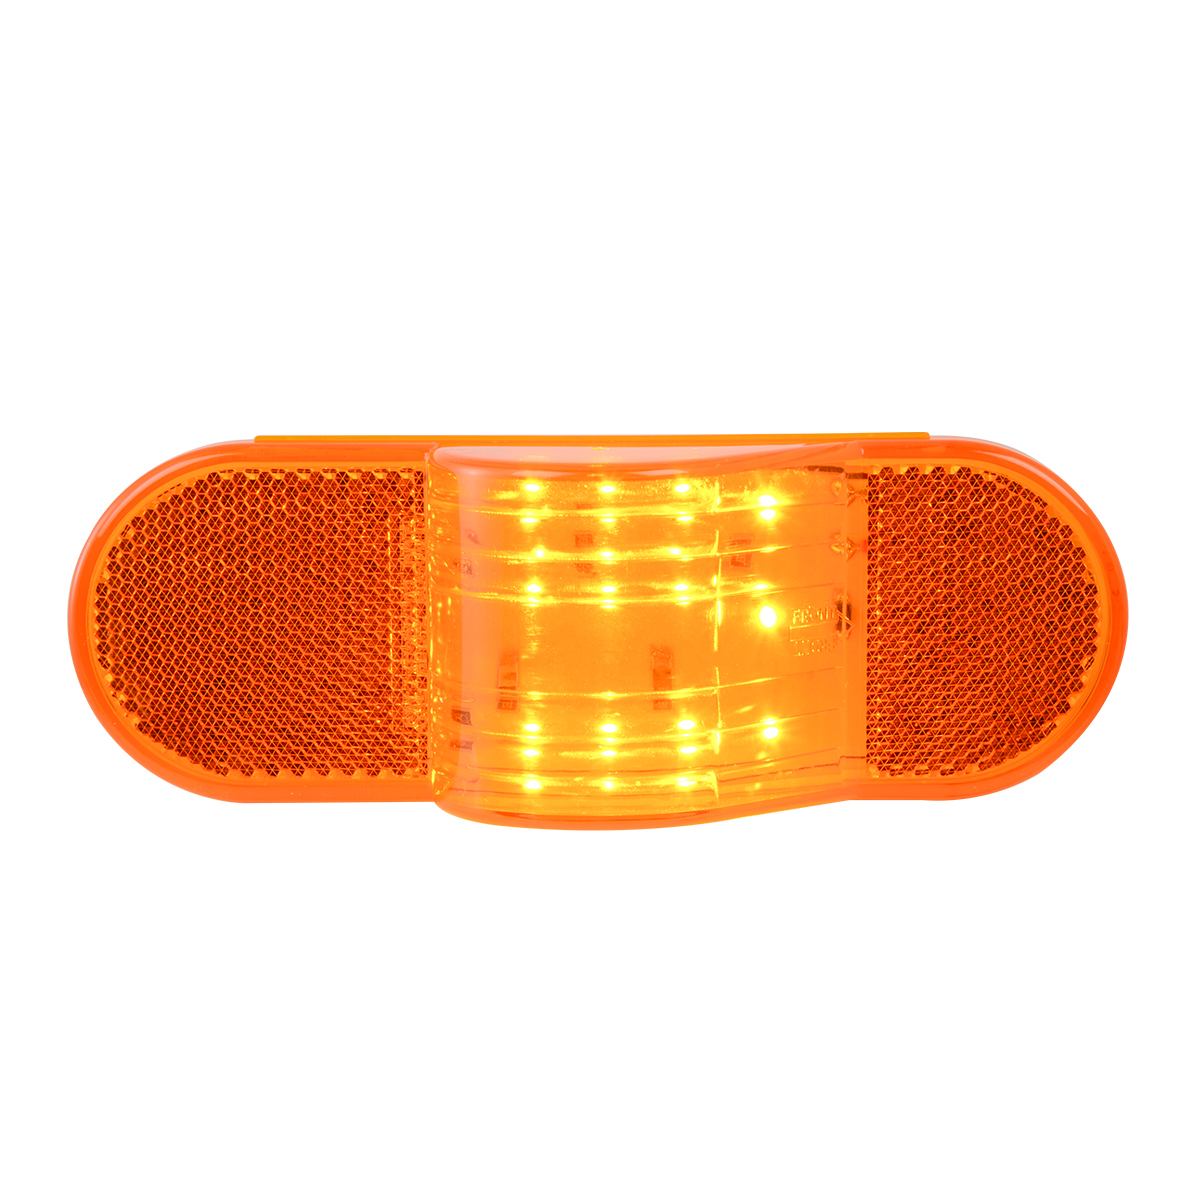 79995 Oval Side Marker & Turn 12 LED Light w/ Reflector